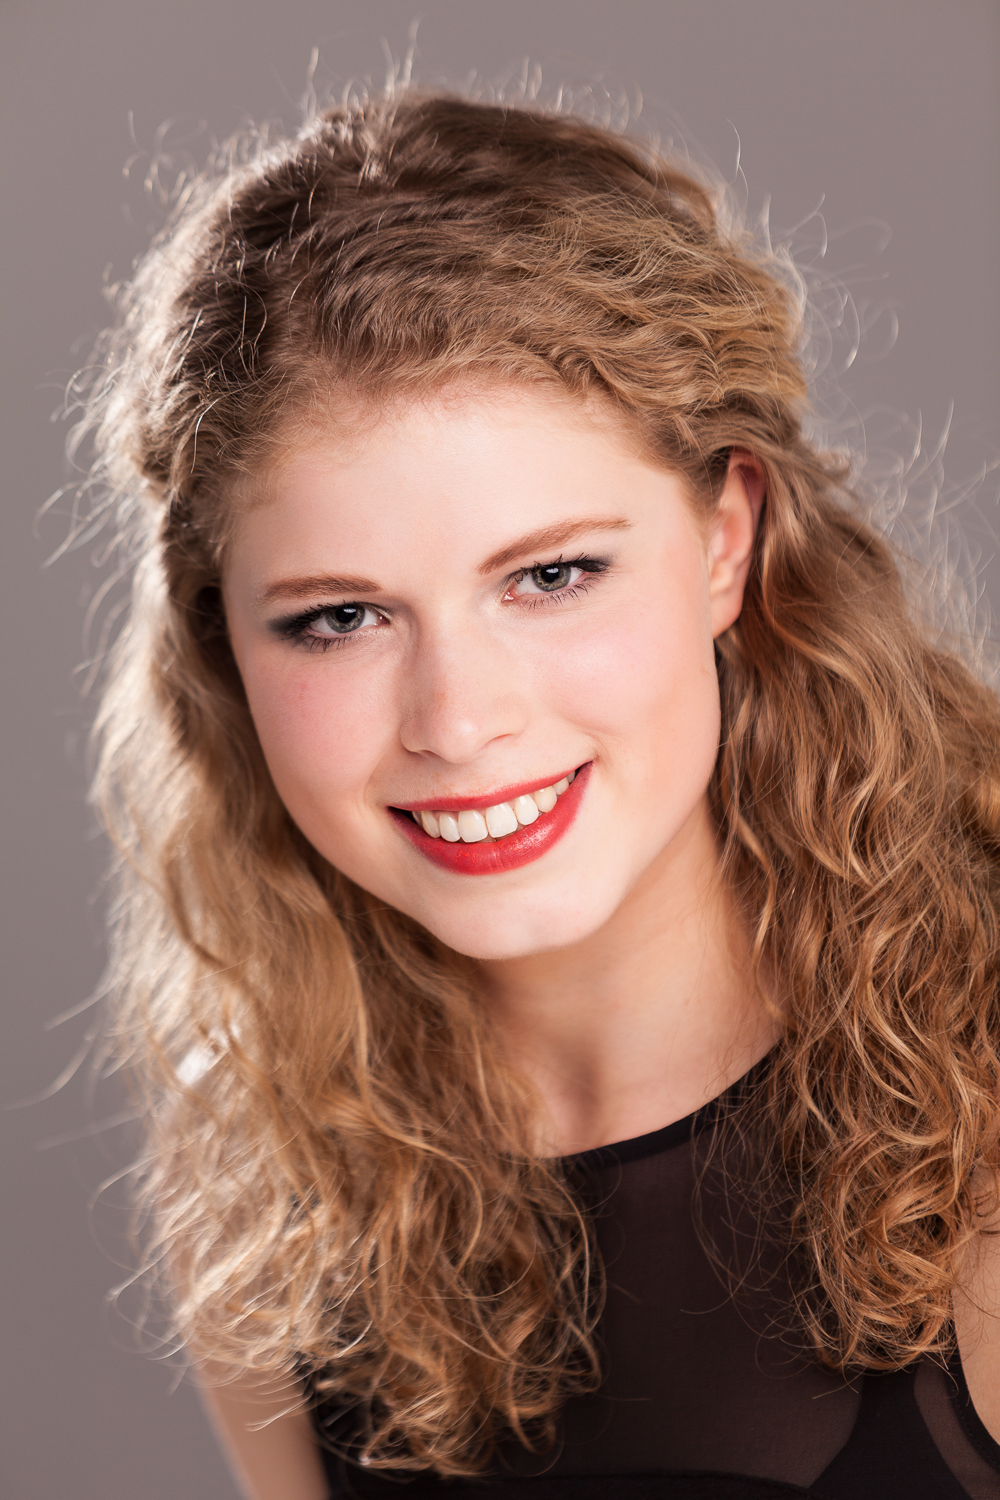 Musical artiest Margot Kiekebos Zwolle